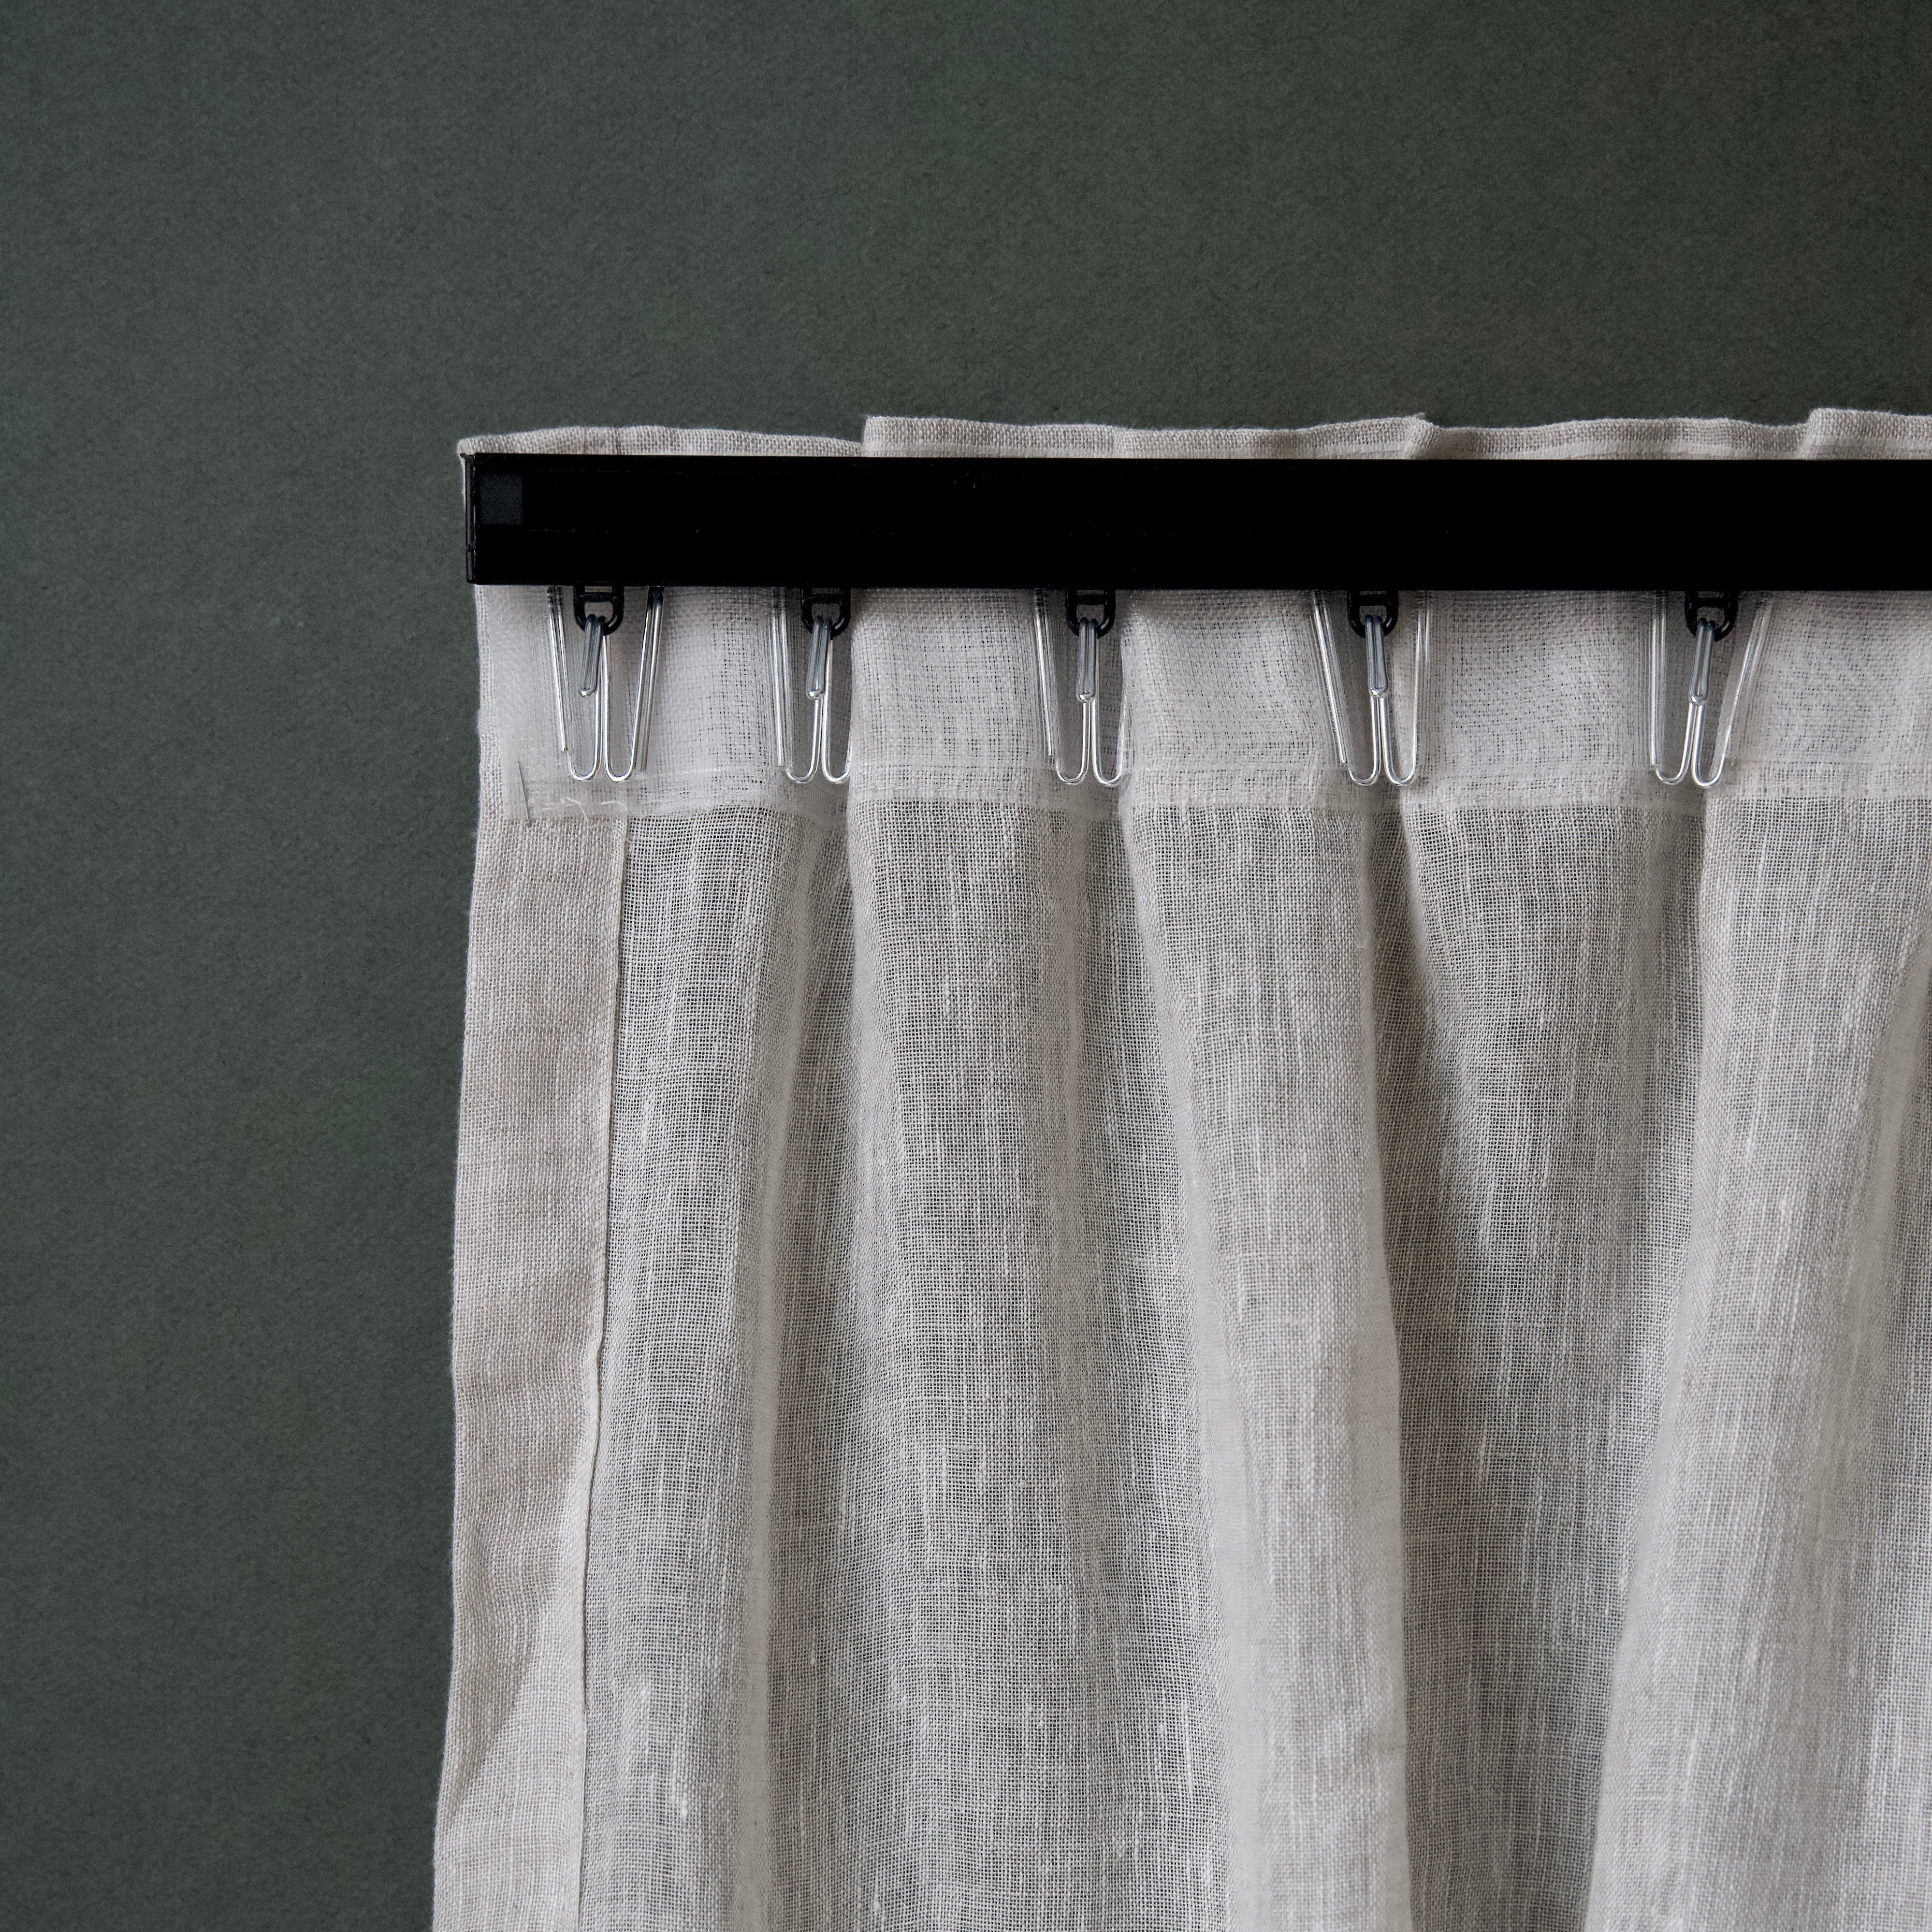 Curtain track in Black or White